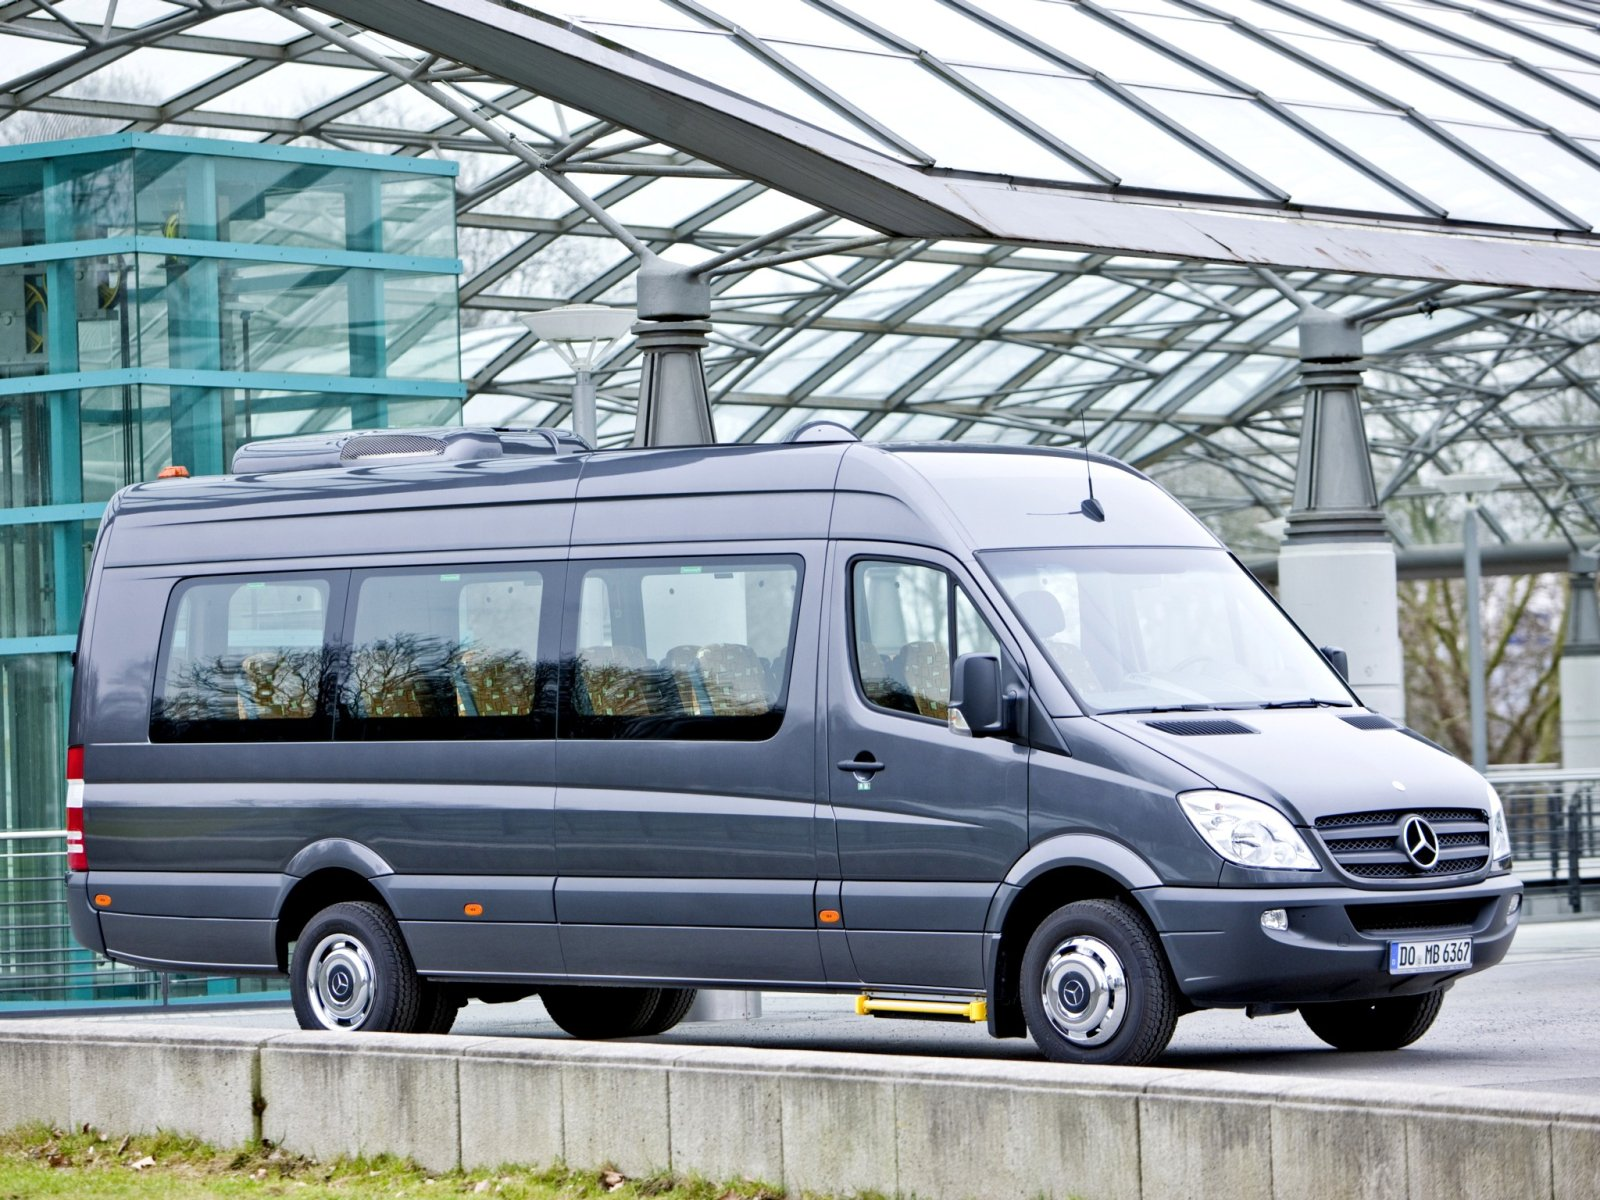 Mercedes-Benz Sprinter 215 2012 photo - 8